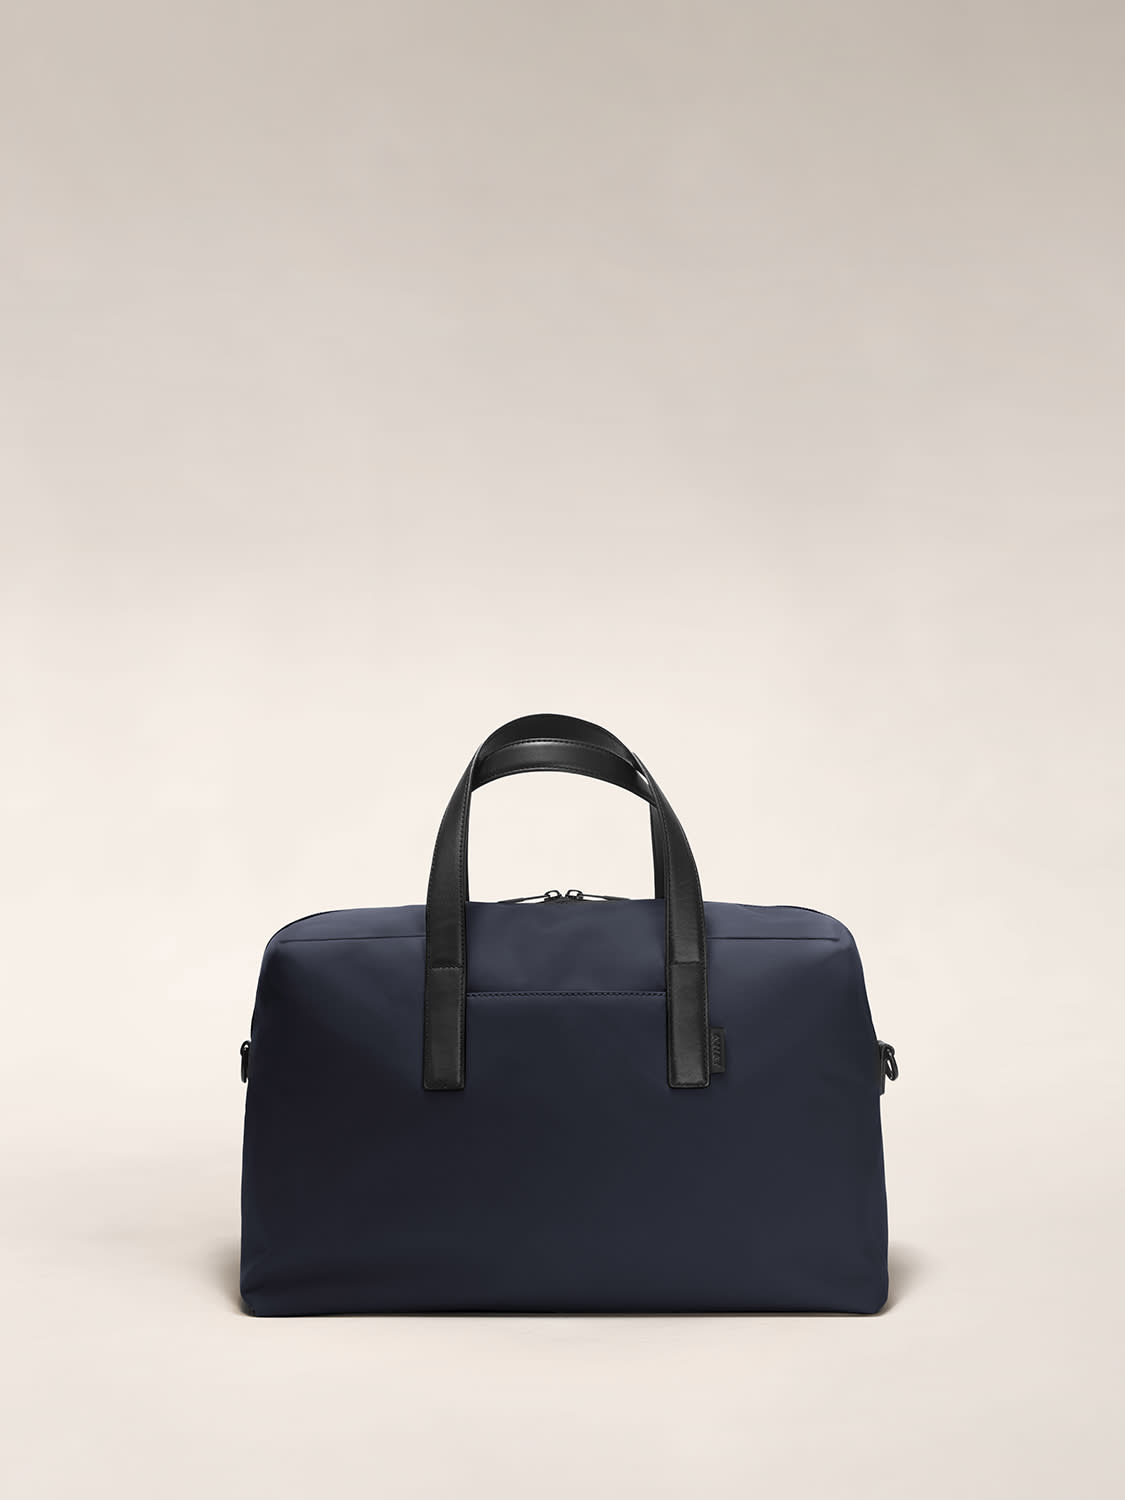 The Everywhere Bag in Navy nylon